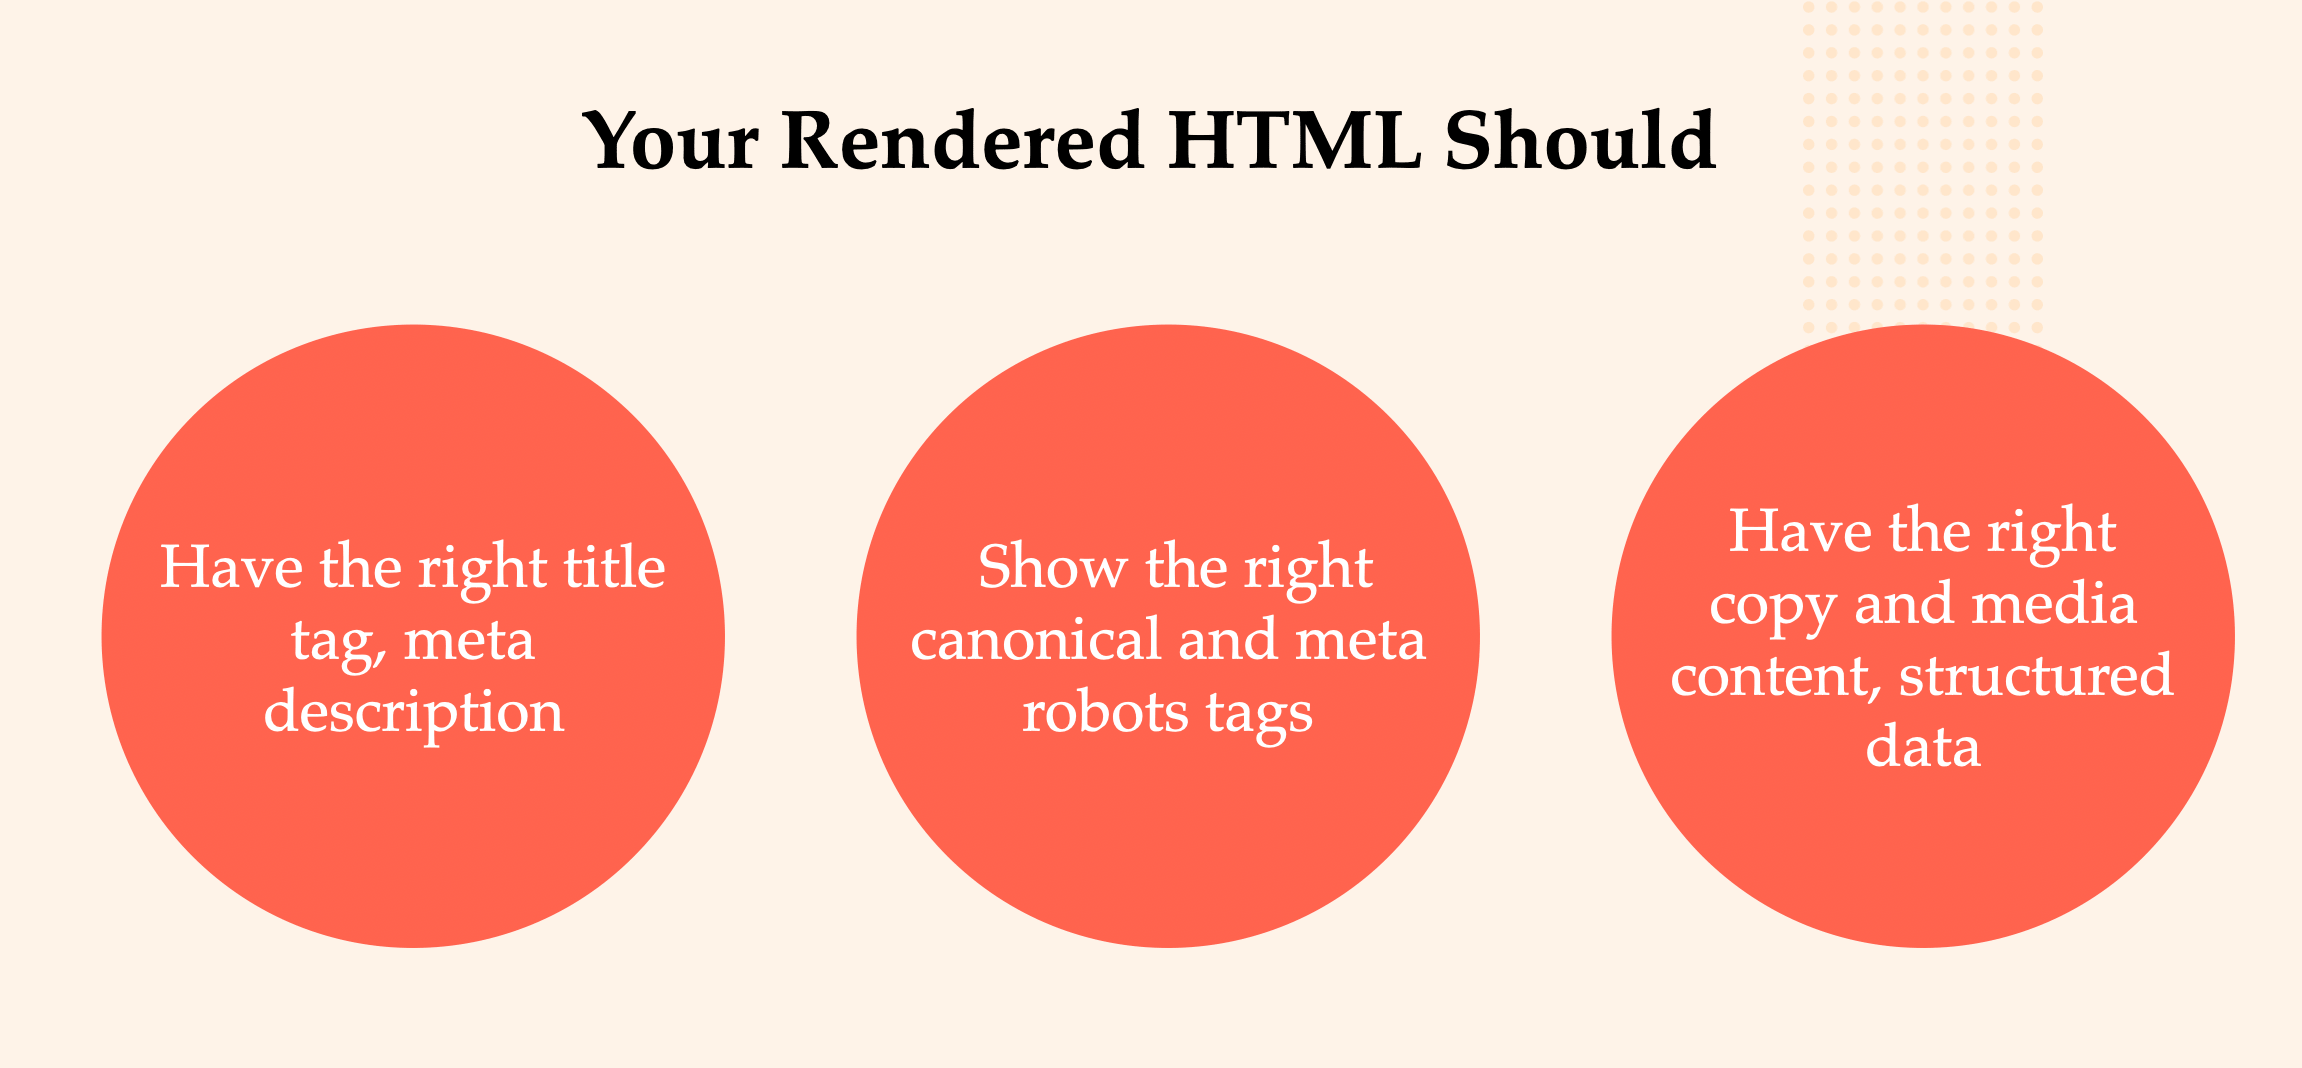 You need to make sure that rendered HTML is displaying the correct information.